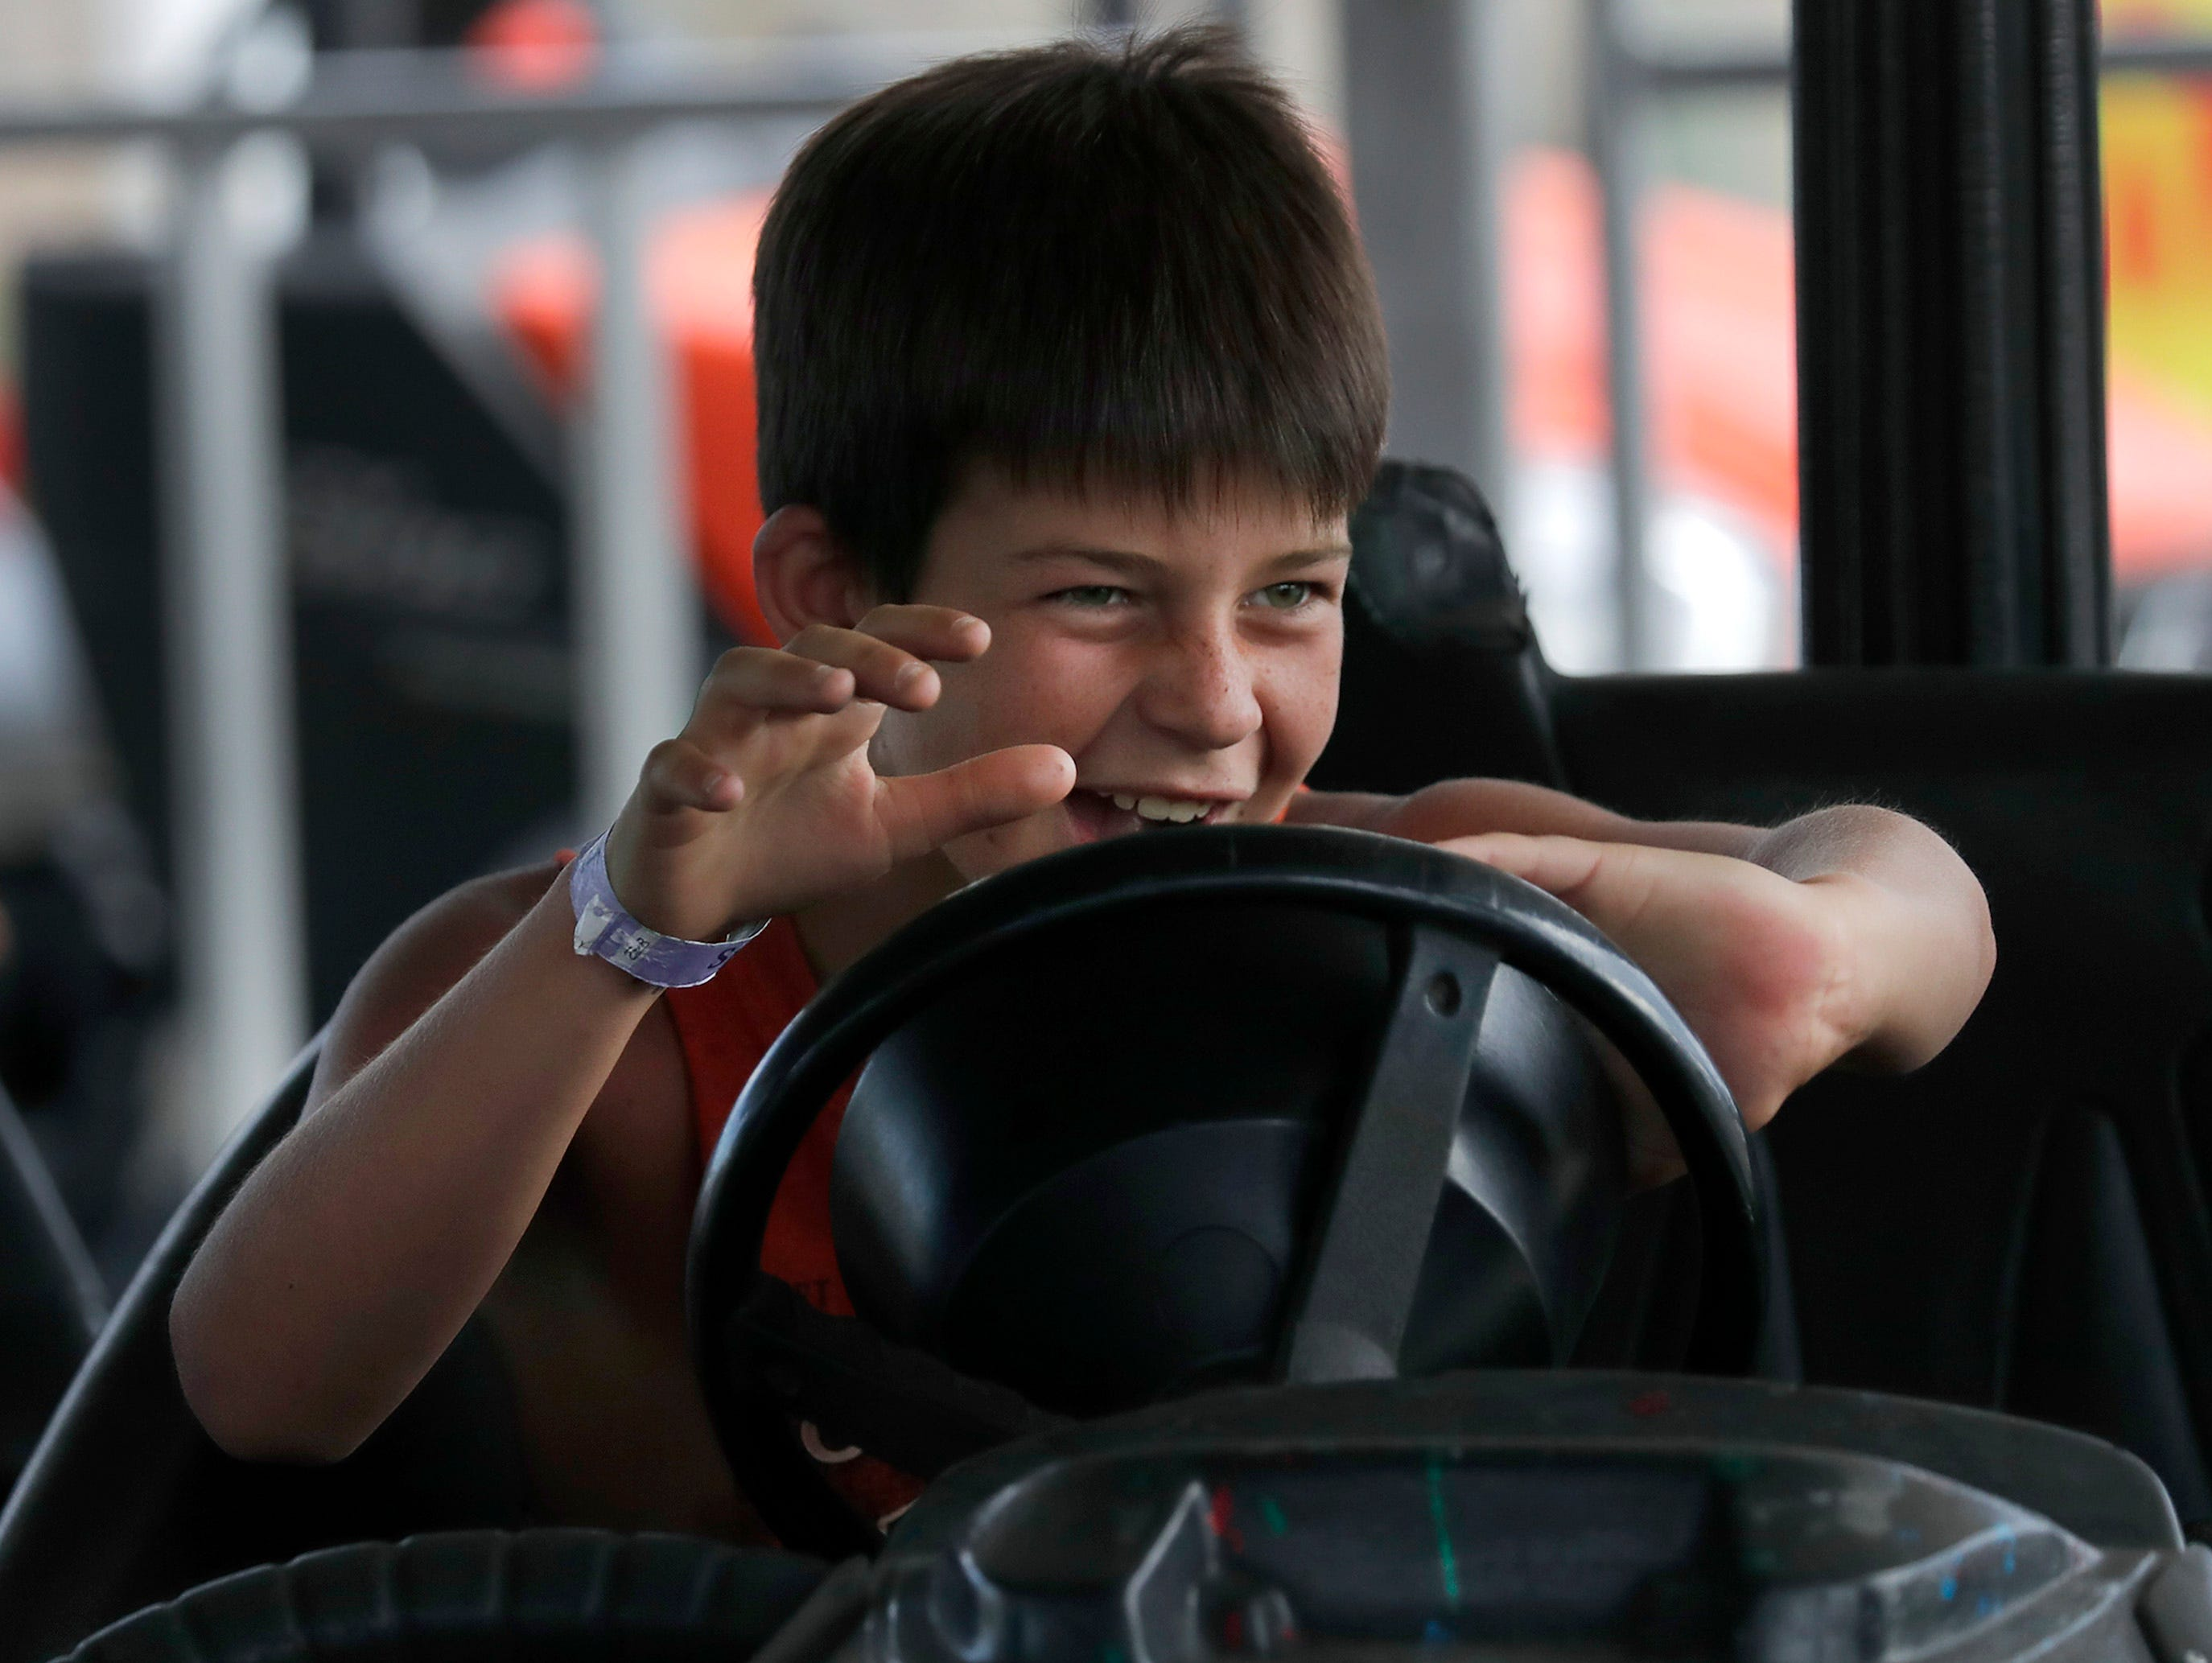 Wyatt Bemis, Crivitz, drives a bumper car during the Outagamie County Fair on Wednesday, July 25, 2018 in Seymour, Wis. 